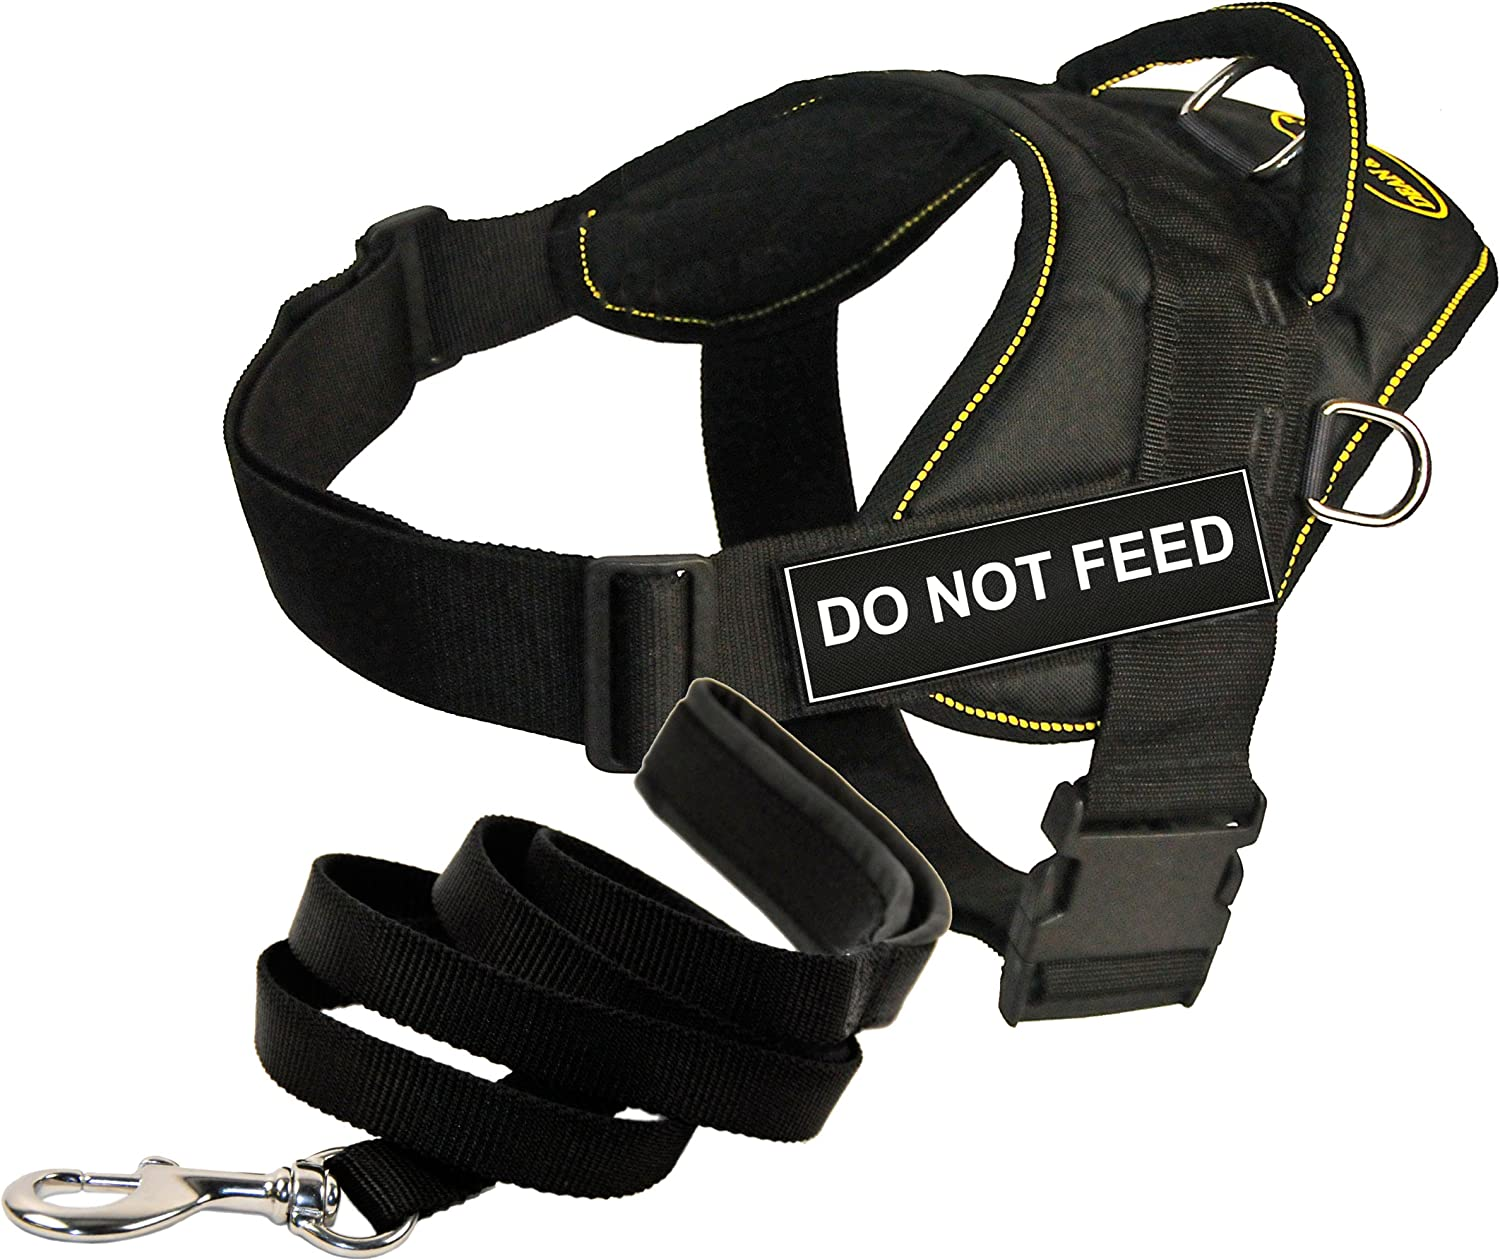 Dean & Tyler Bundle One DT Fun Works Harness, Do Not Feed, Yellow Trim, Small (22Inch, 27Inch) + One Padded Puppy Leash, 6Feet Stainless Snap, Black